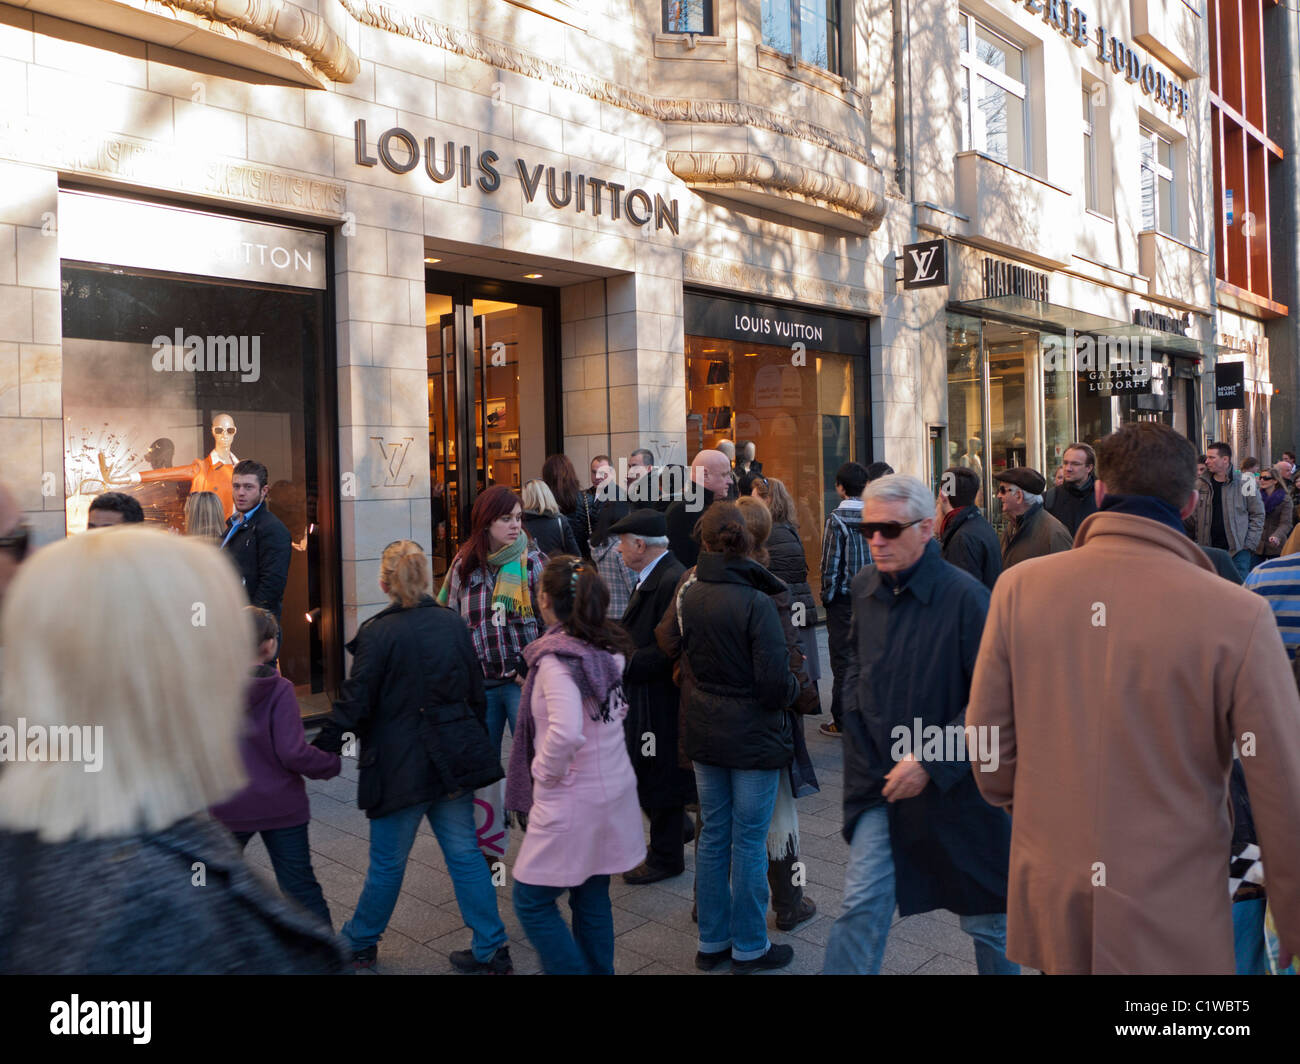 Crowds of shoppers on upmarket shopping street Konigsallee in Dusseldorf in Germany - Stock Image